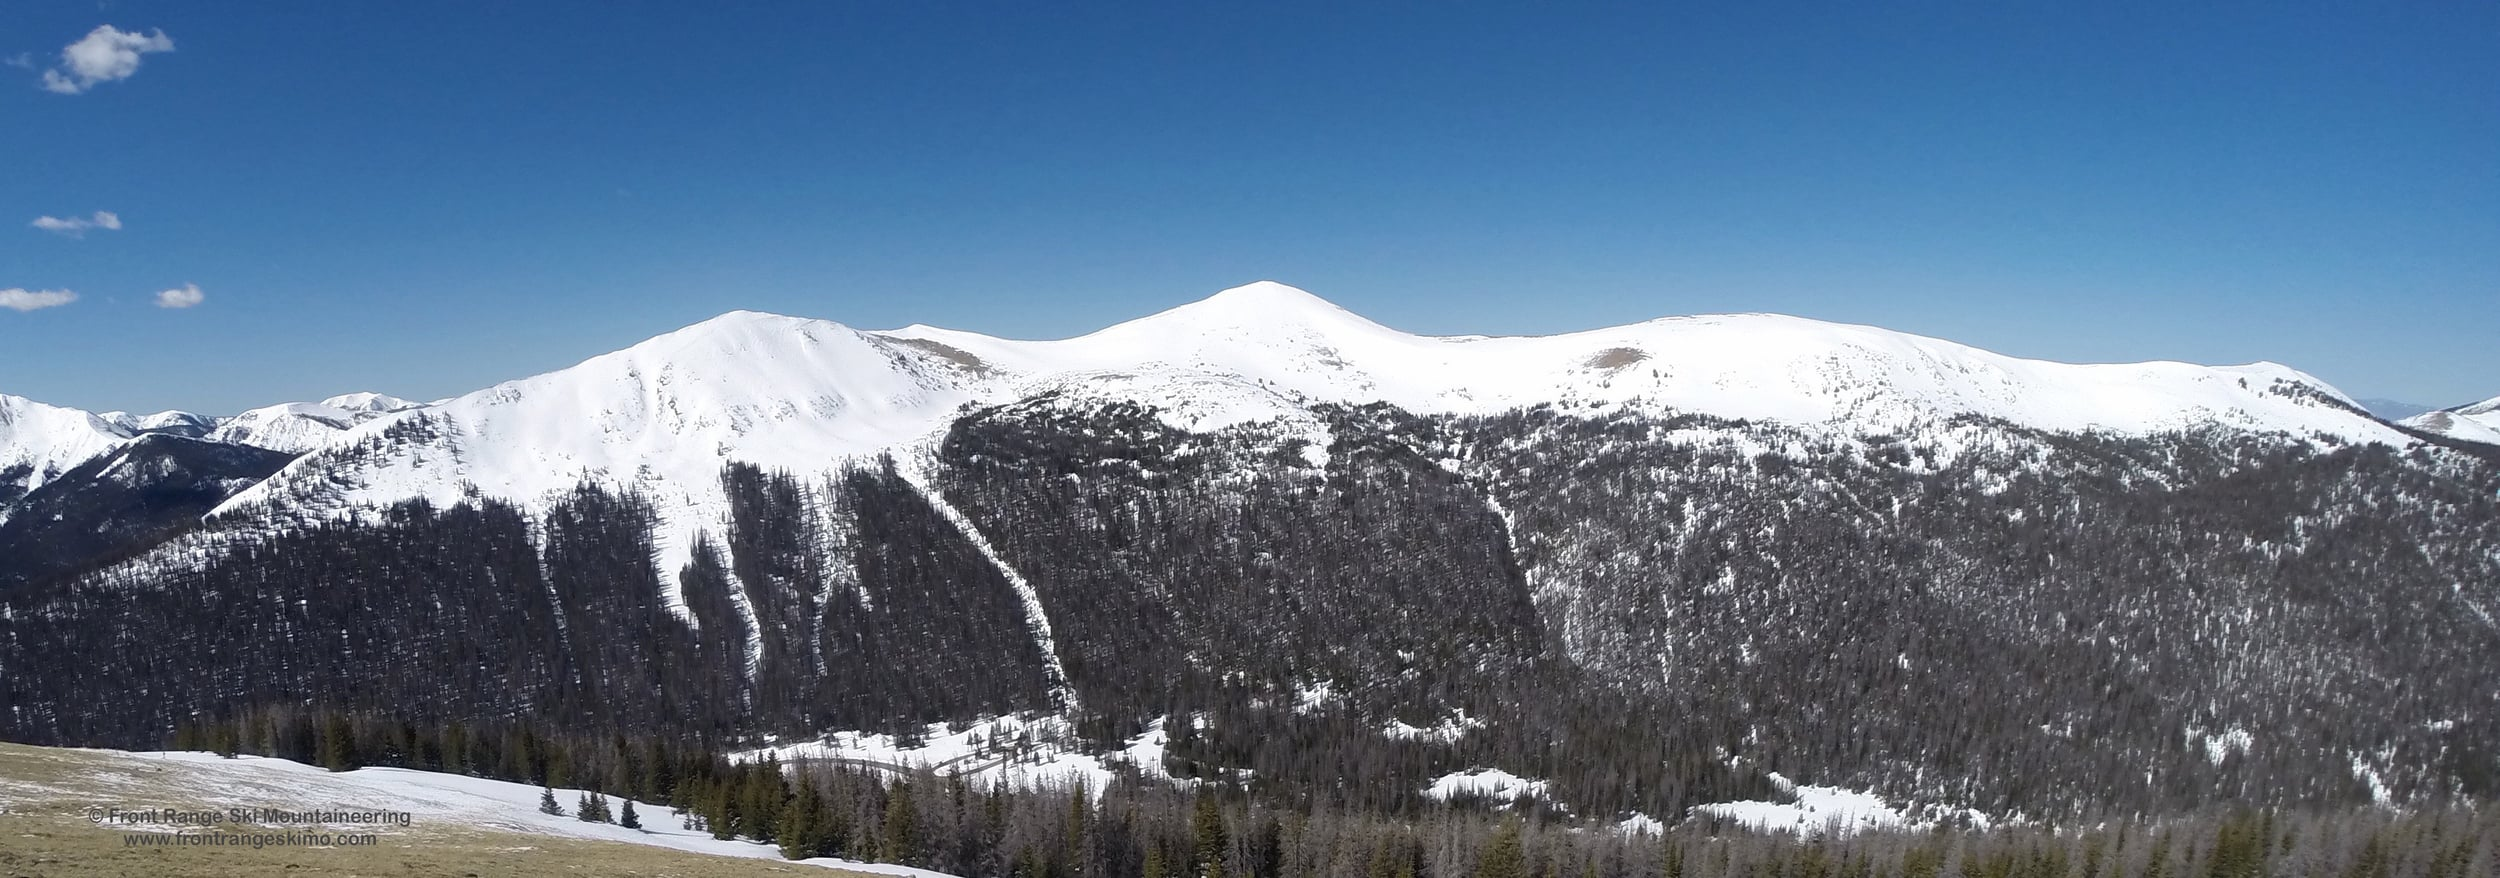 South Diamond Peak, North Diamond Peak, Point 11,588', and Montgomery Pass from the East.